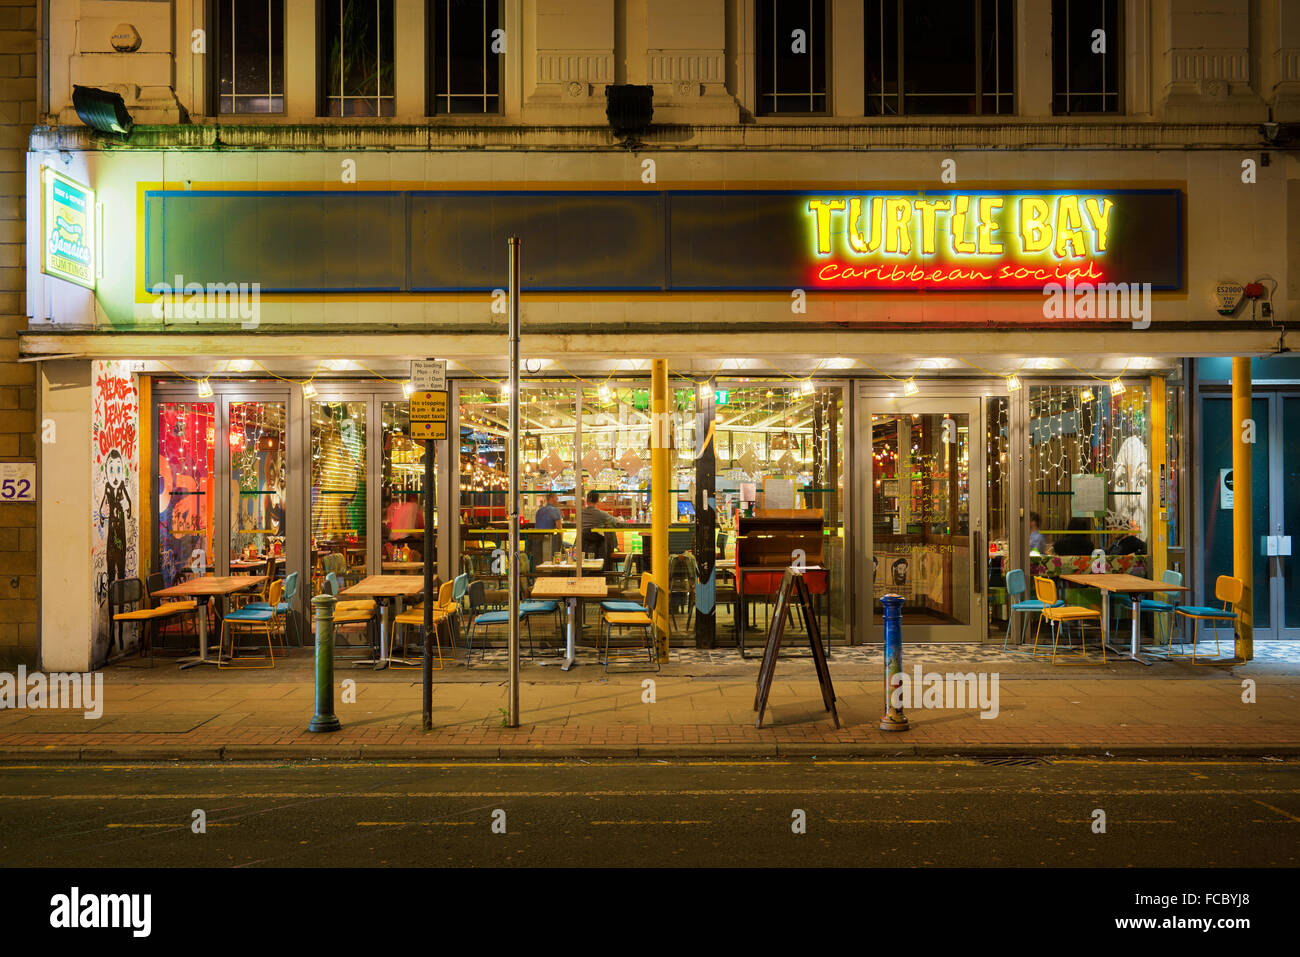 The Turtle Bay Caribbean themed restaurant located on Oldham Street in Manchester City Centre. - Stock Image